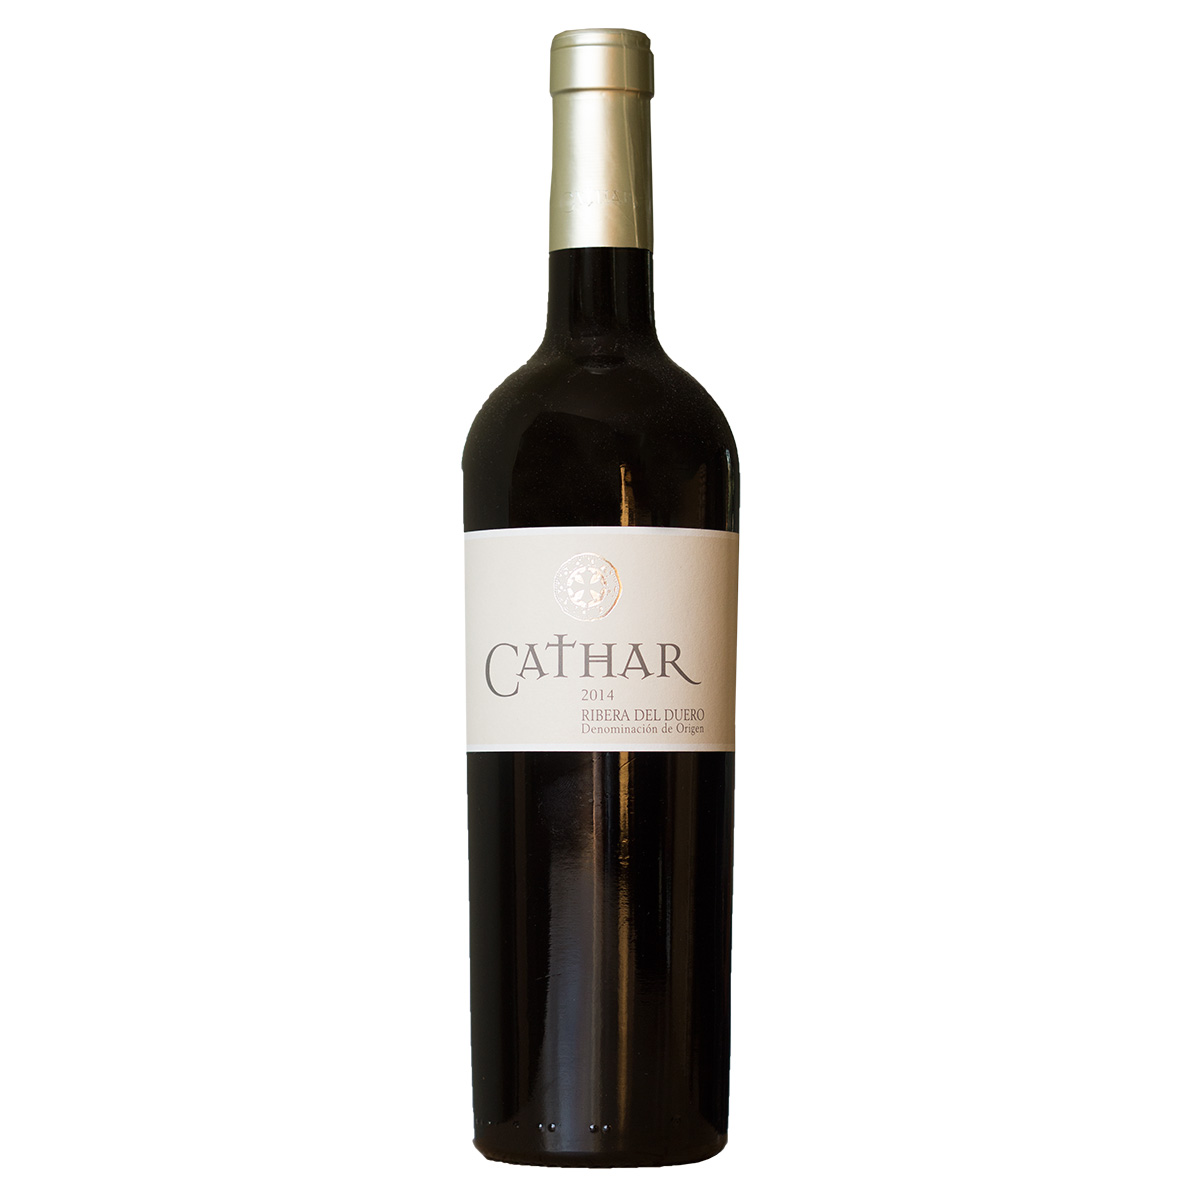 Cathar Vino Tinto DO